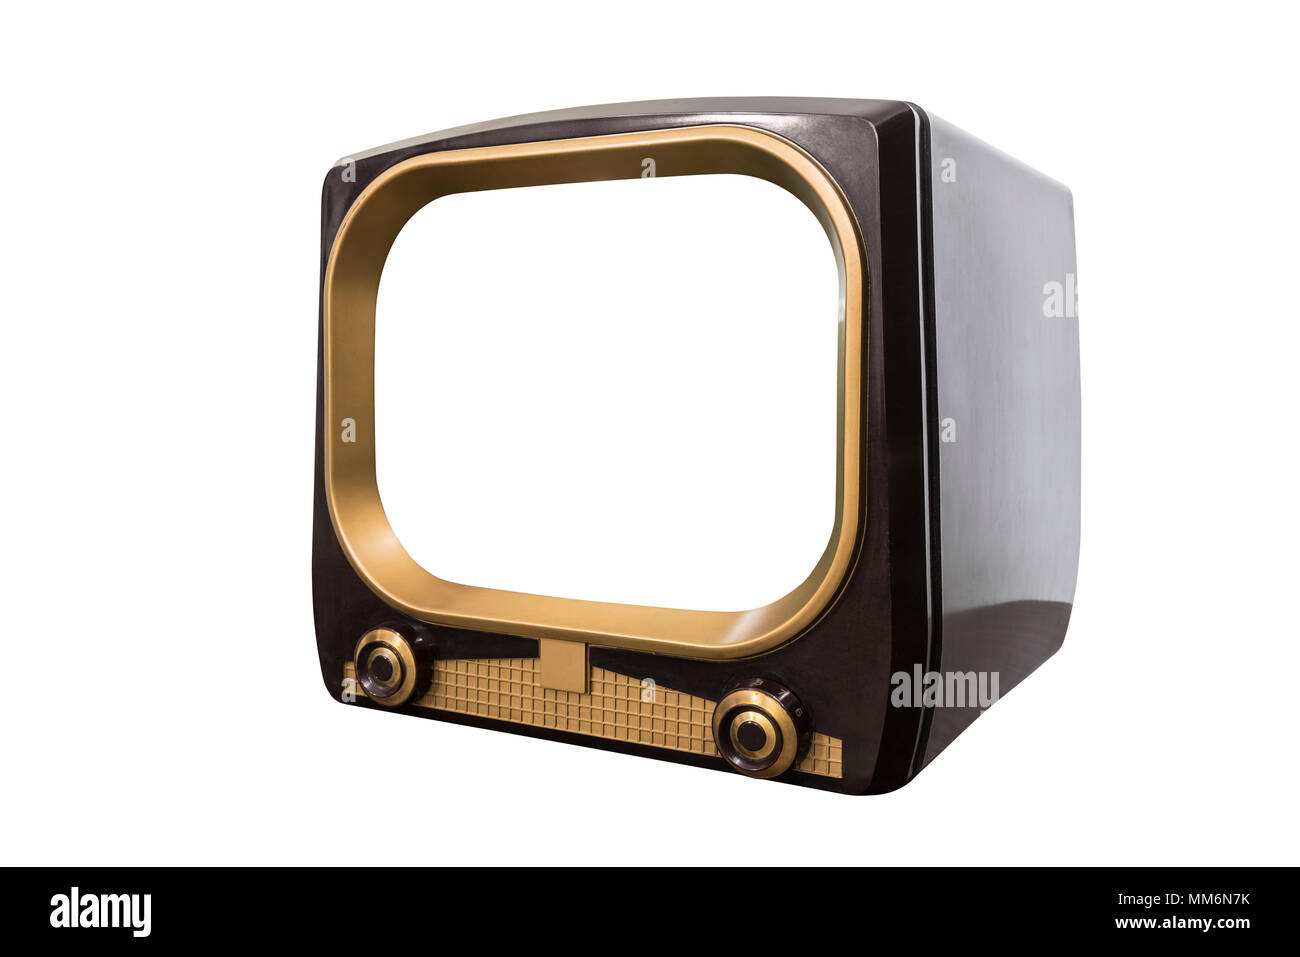 Vintage 1950s television isolated on white with cut out screen and clipping path. - Stock Image